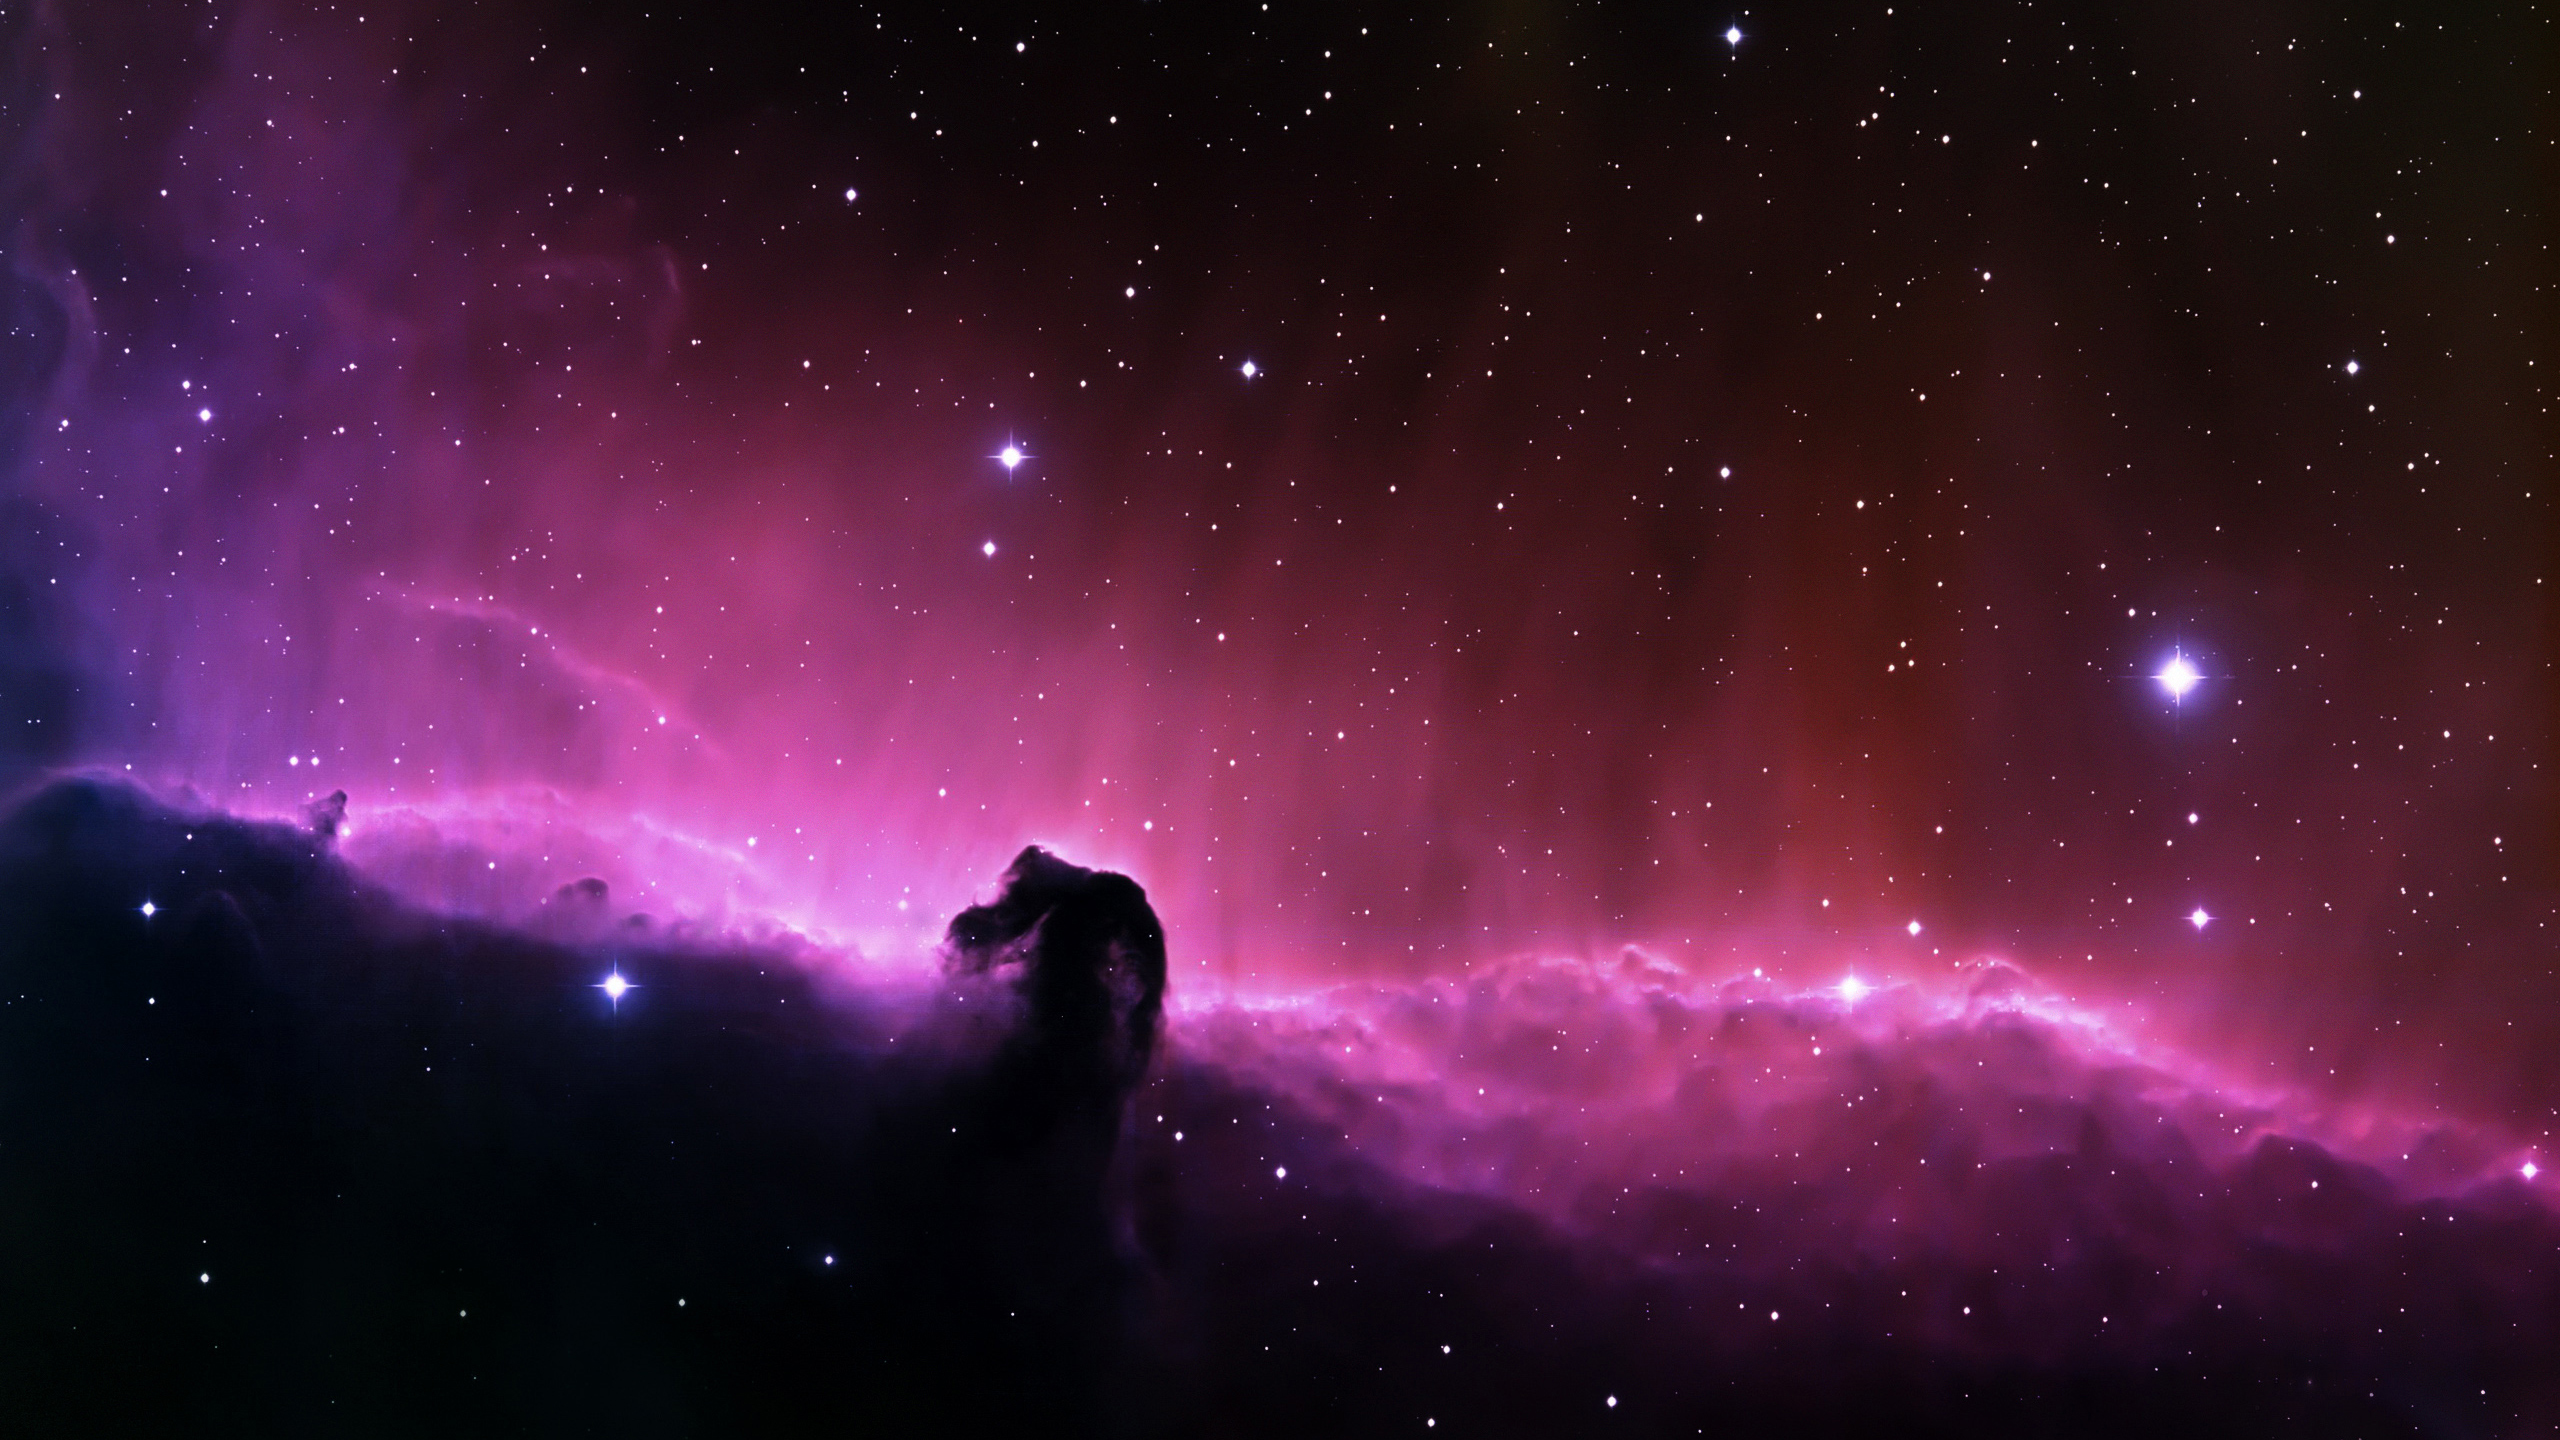 Space Download Free Backgrounds HD